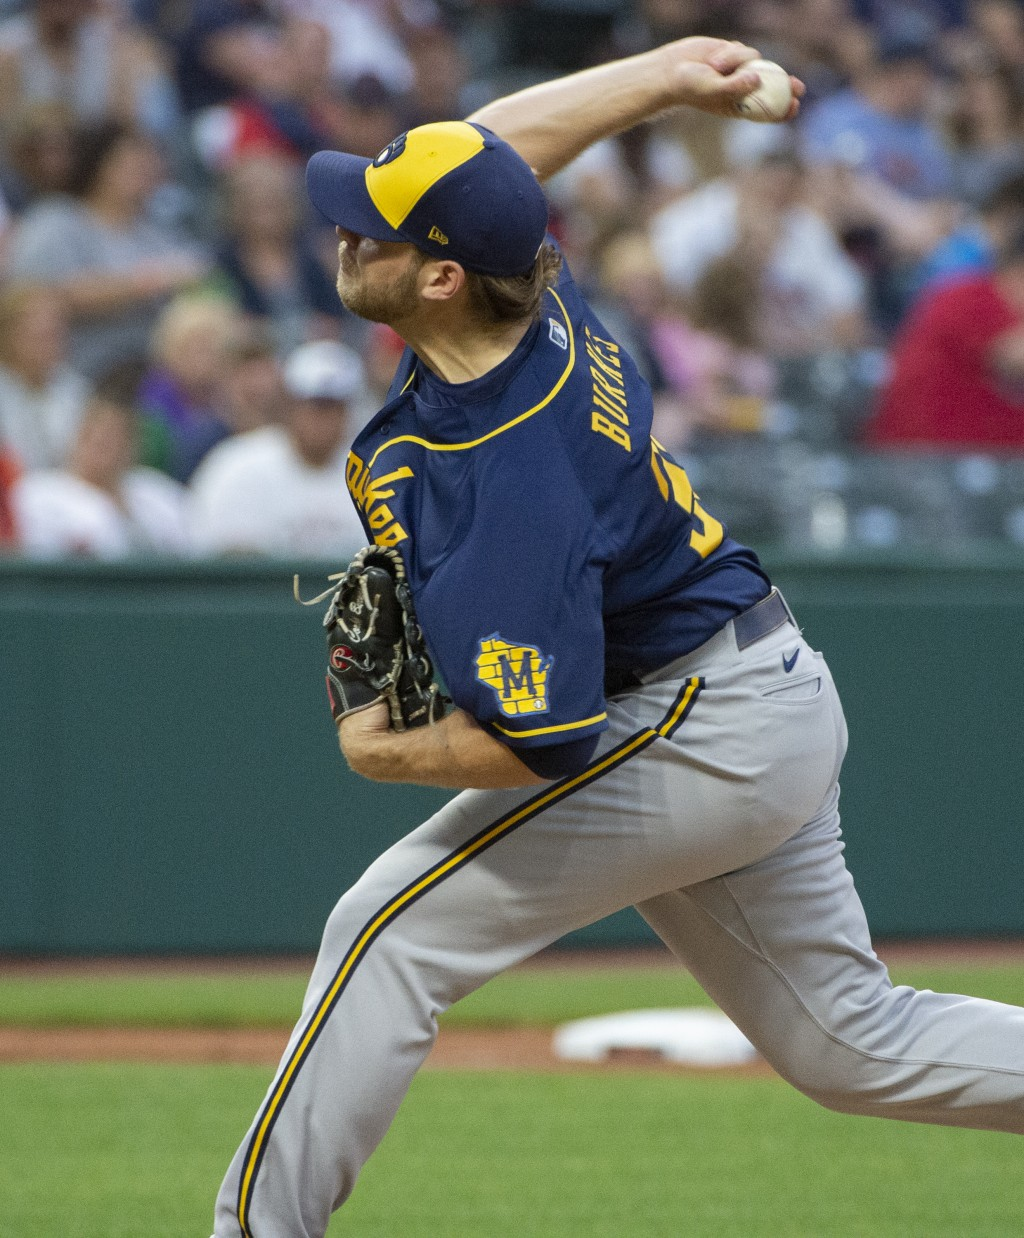 Milwaukee Brewers starting pitcher Corbin Burnes throws to strike out Cleveland Indians' Franmil Reyes during the fifth inning of a baseball game in C...